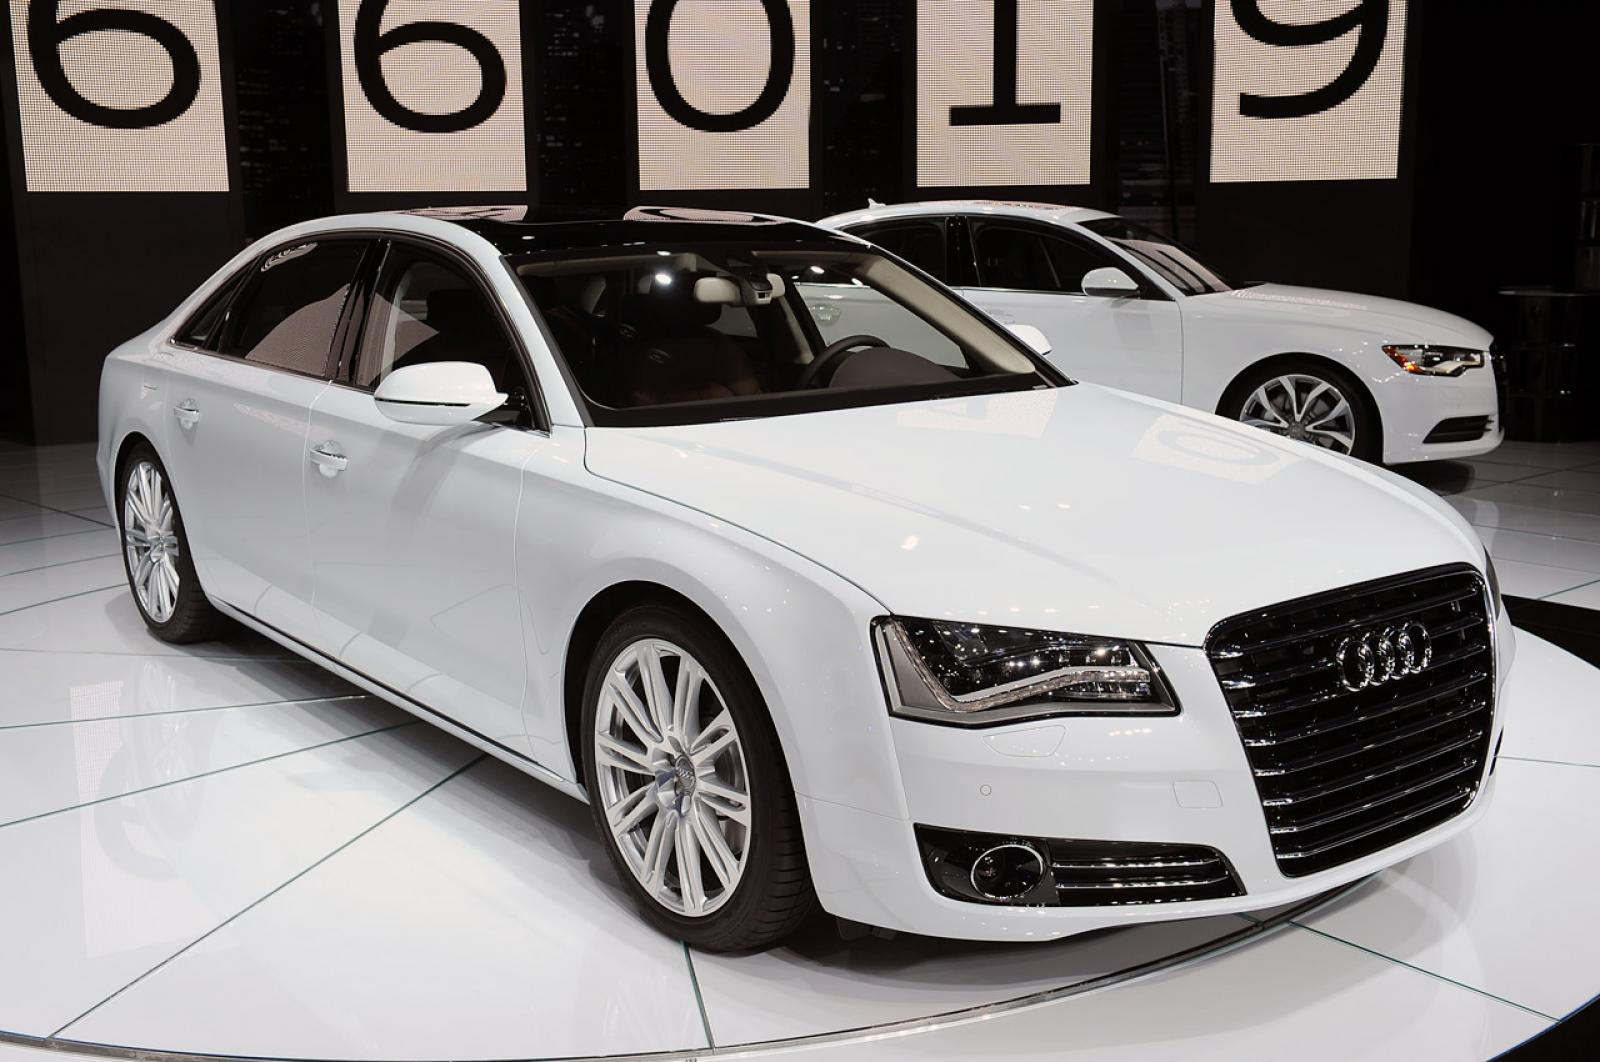 2014 Audi A8 Information And Photos Zomb Drive